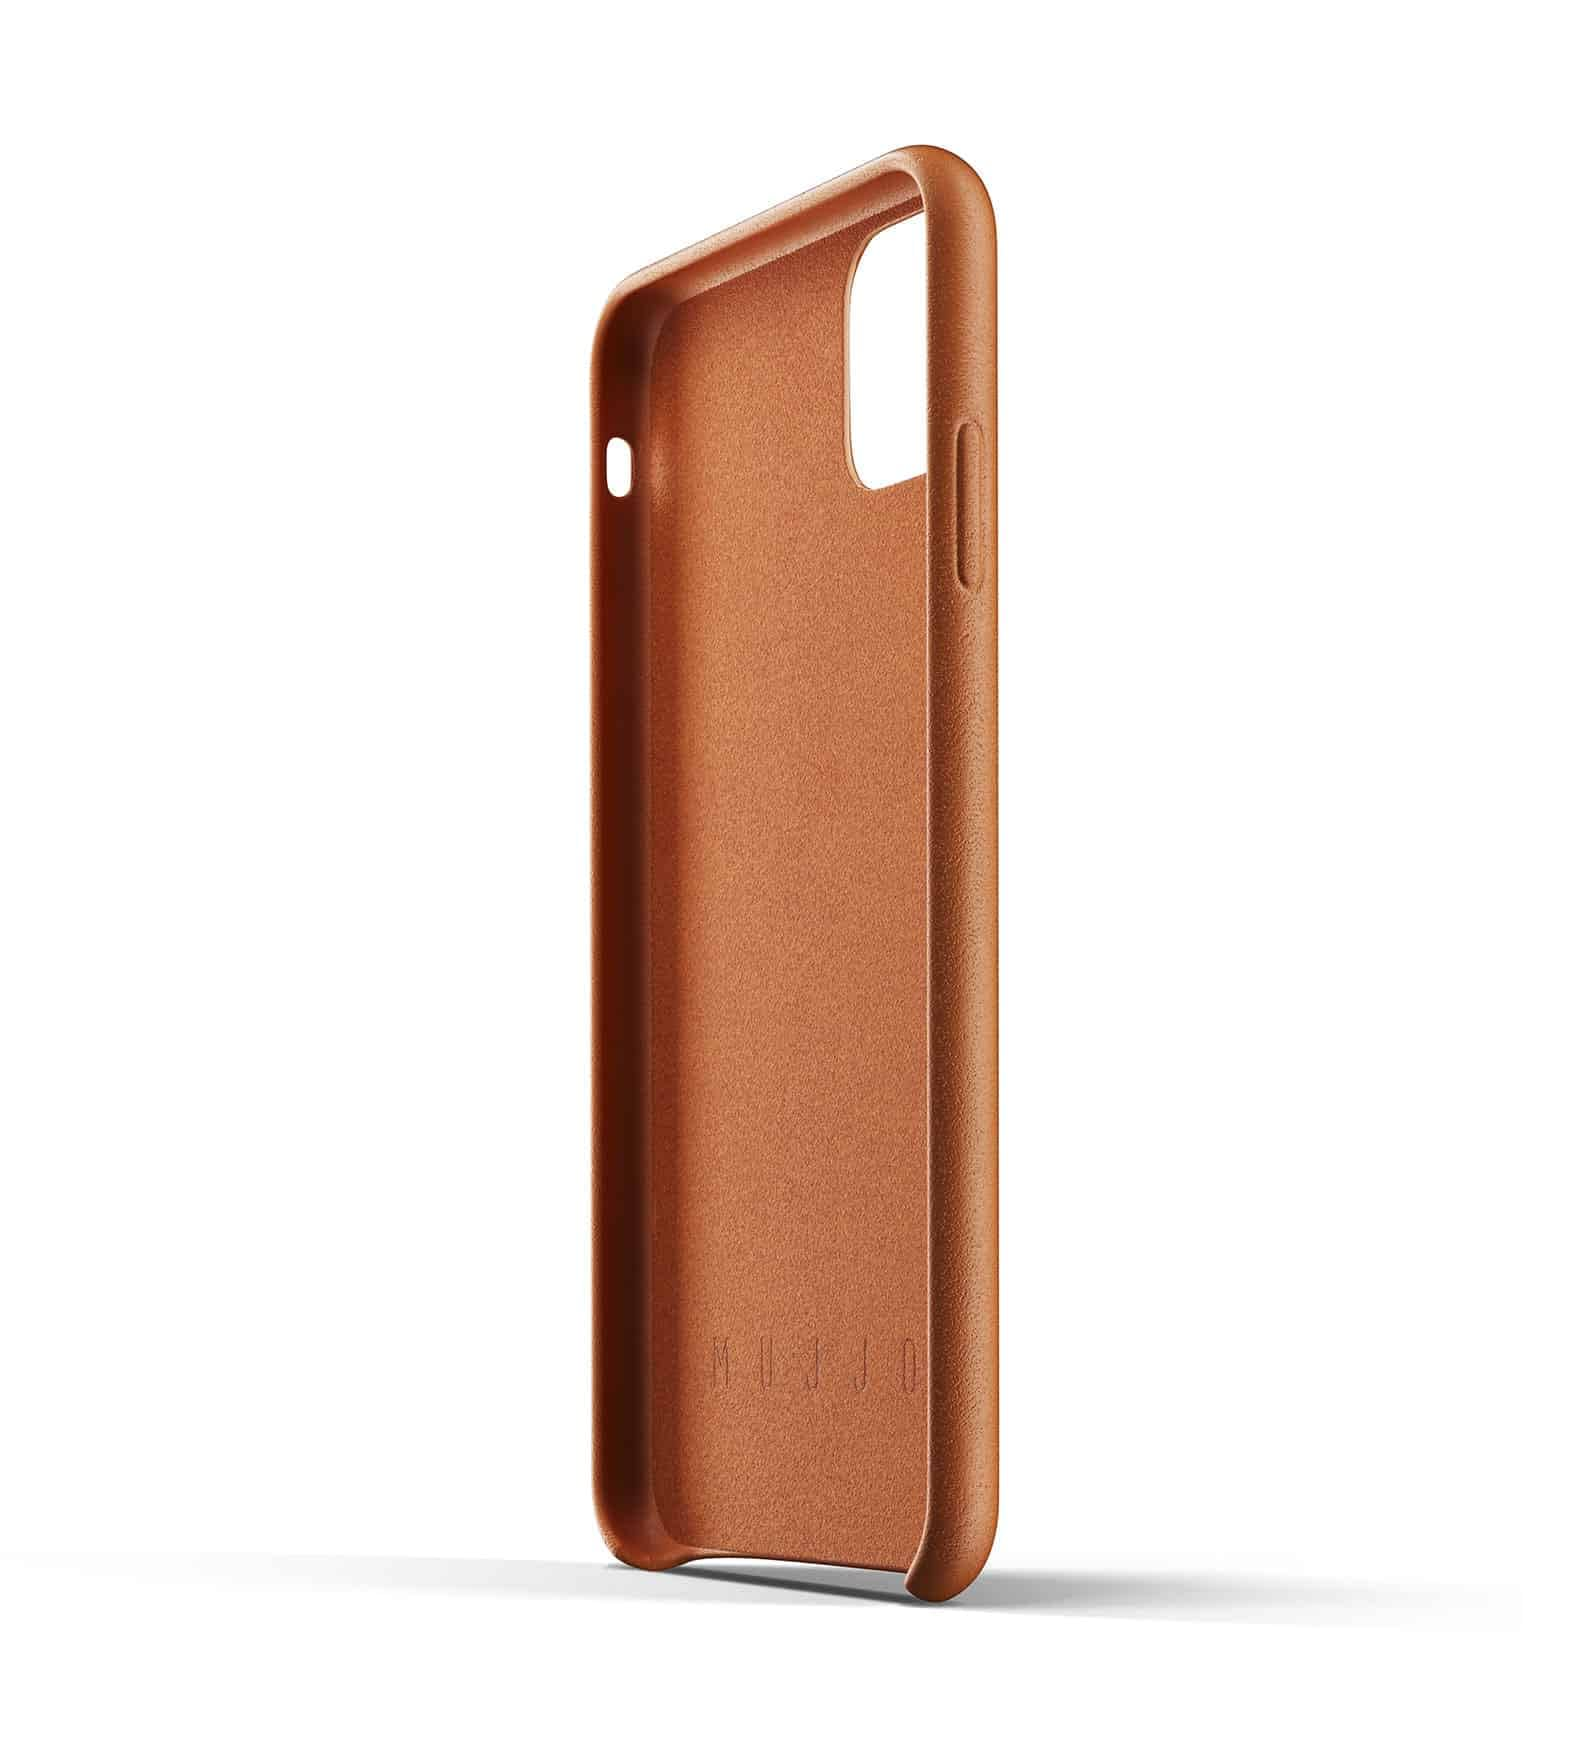 Full leather wallet case for iPhone 11 Pro Max Tan Thumbnail 05